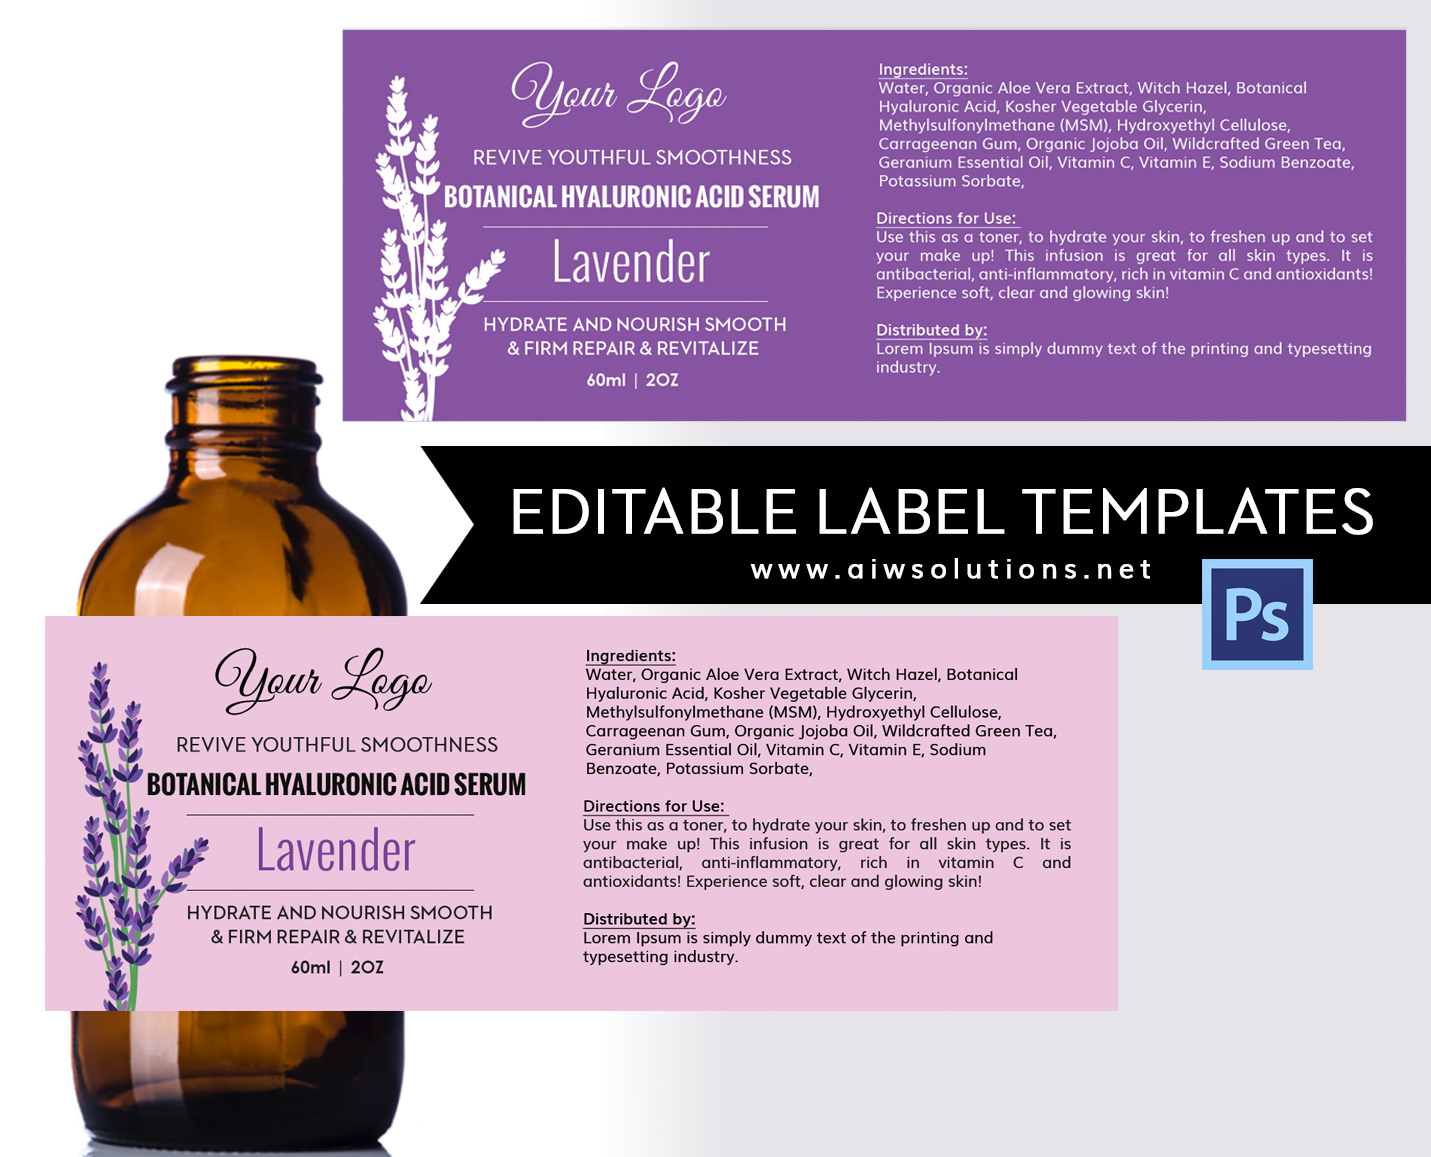 Label Templates aiwsolutions – Product Label Template